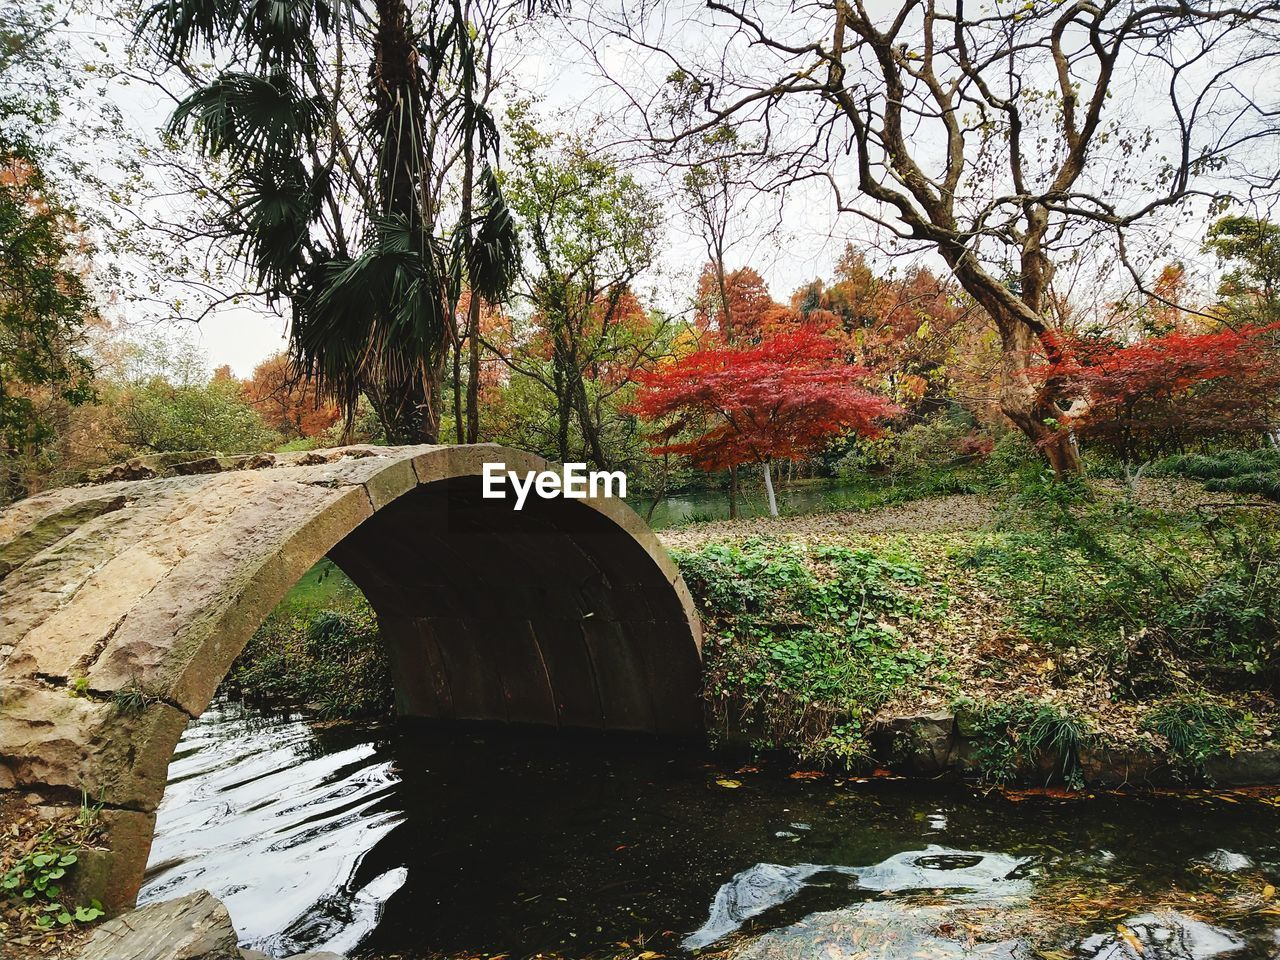 tree, autumn, bridge - man made structure, nature, growth, leaf, day, river, architecture, outdoors, connection, water, no people, forest, scenics, tranquility, beauty in nature, built structure, branch